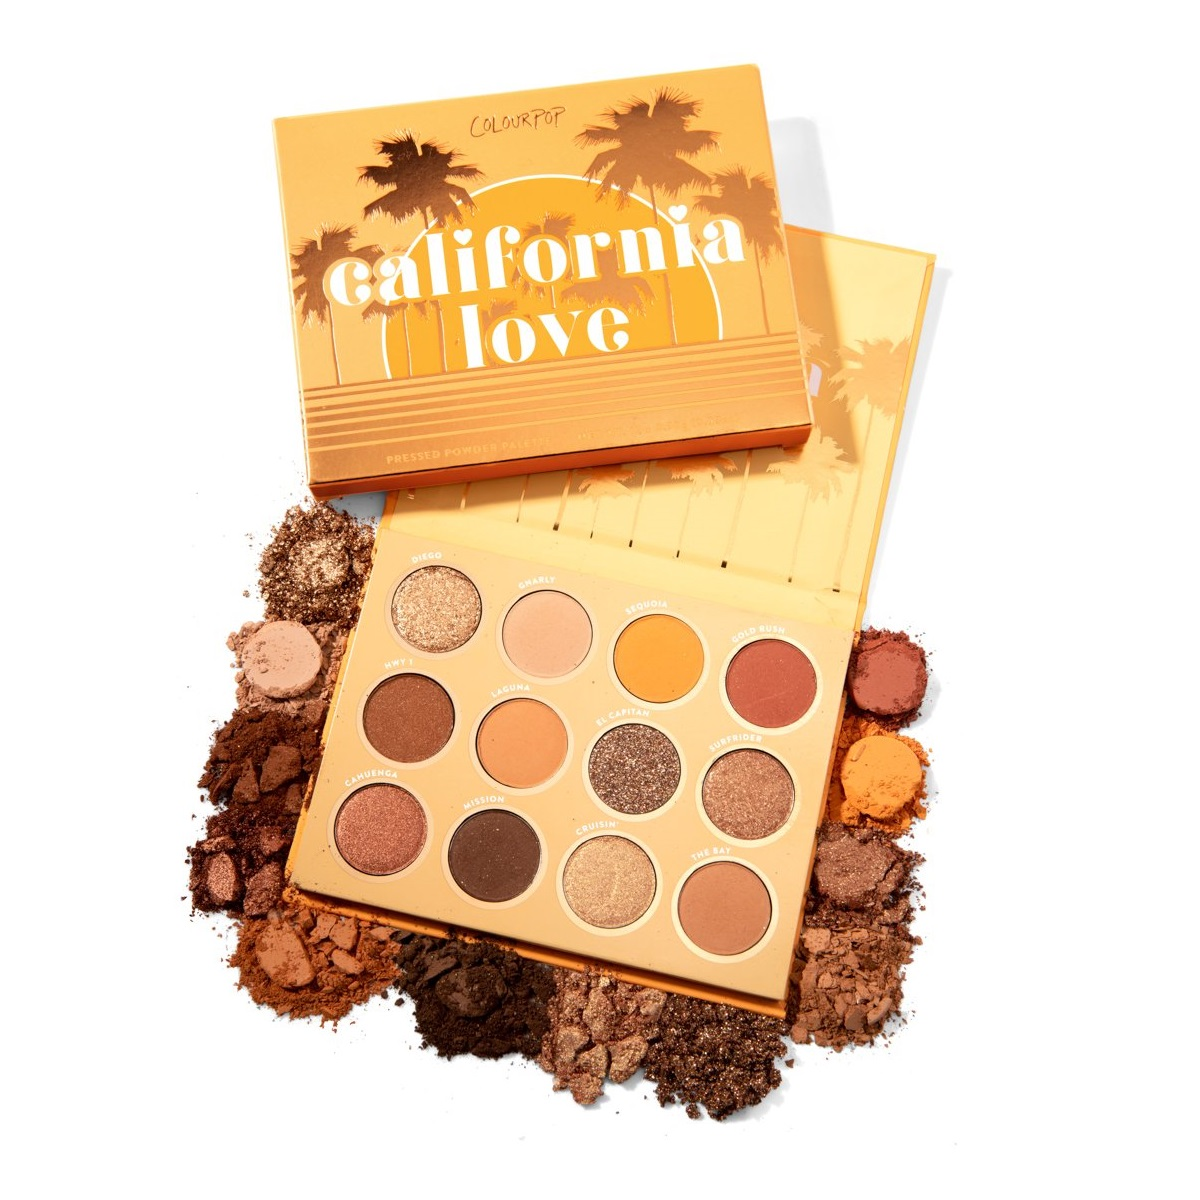 【補貨】7折!Colourpop 16色眼影盤 CALIFORNIA LOVE